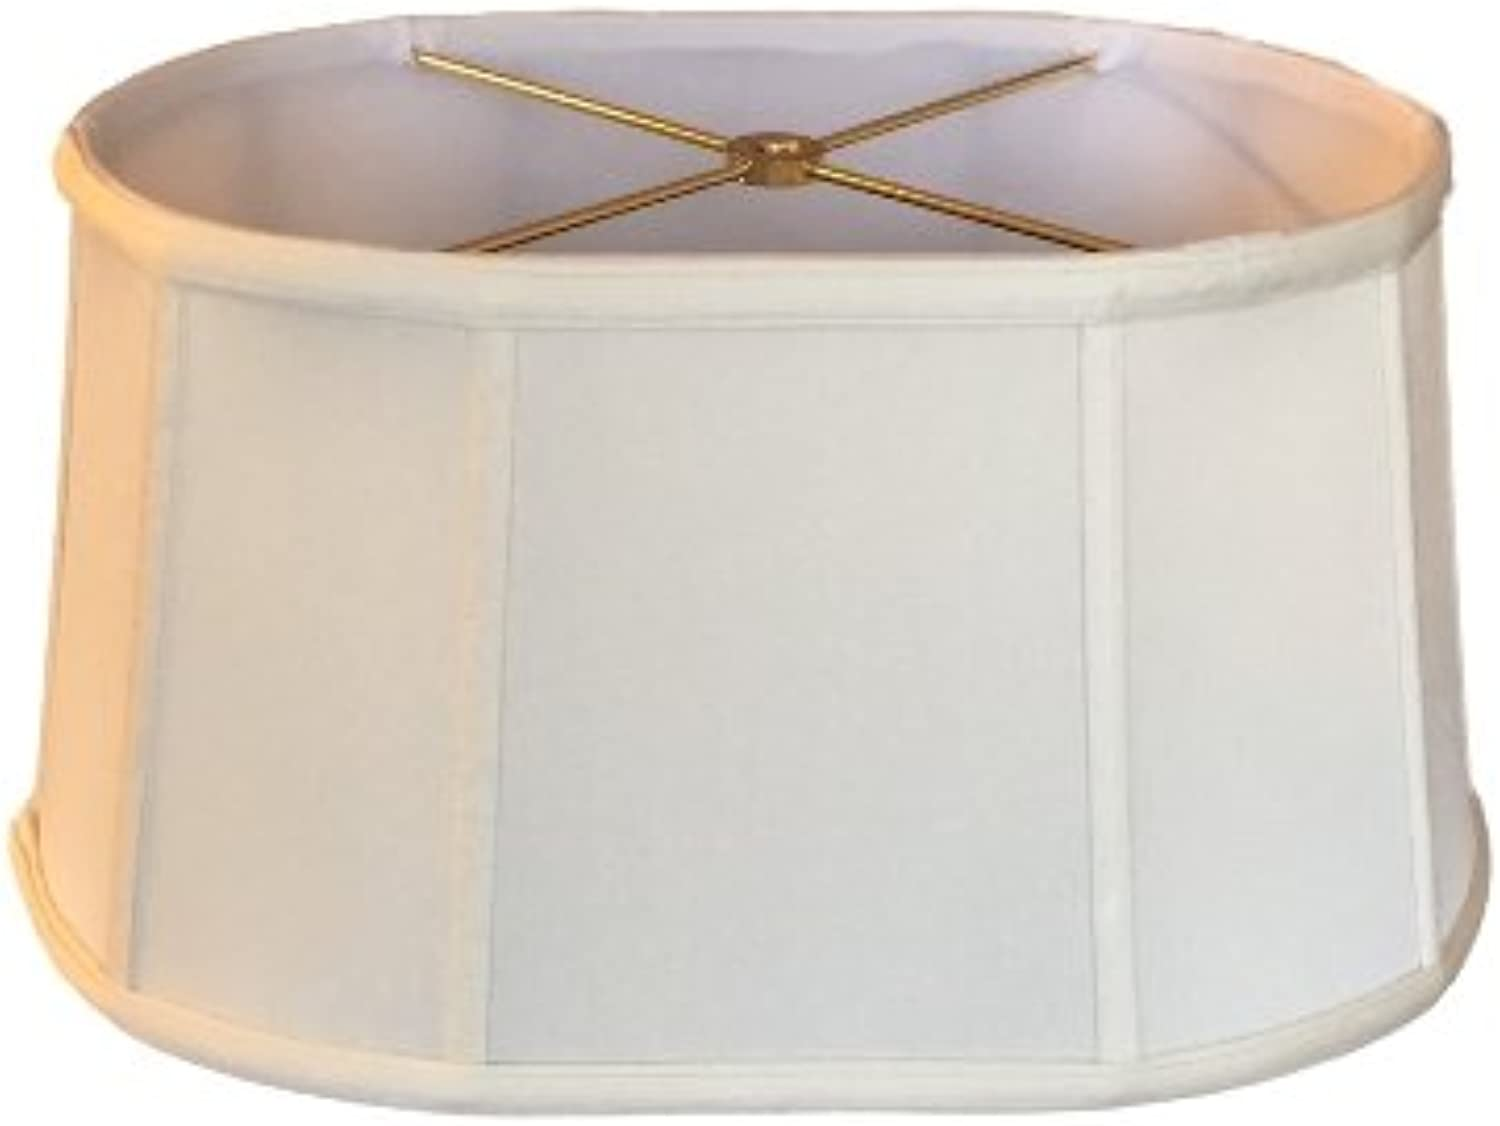 Upgradelights 16 Inch Shallow Retro Oval Washer Lampshade (Off White)